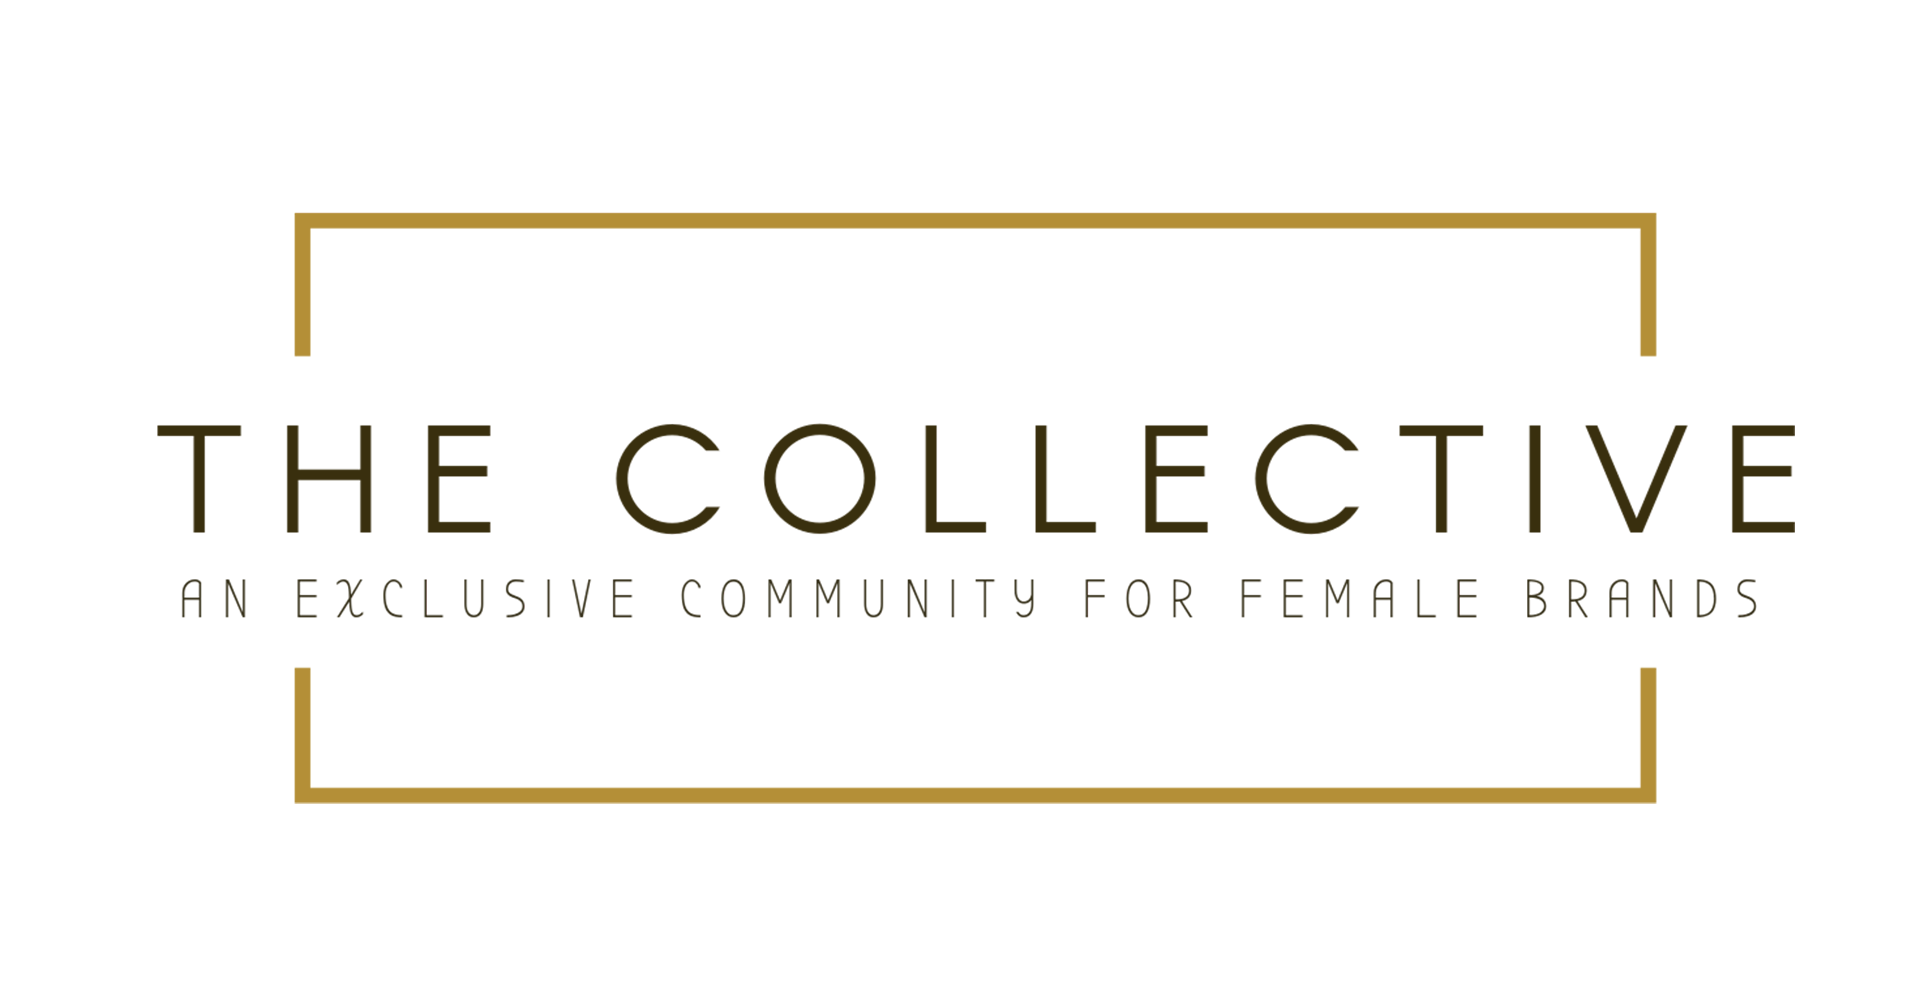 THE COLLECTIVE the women's creative